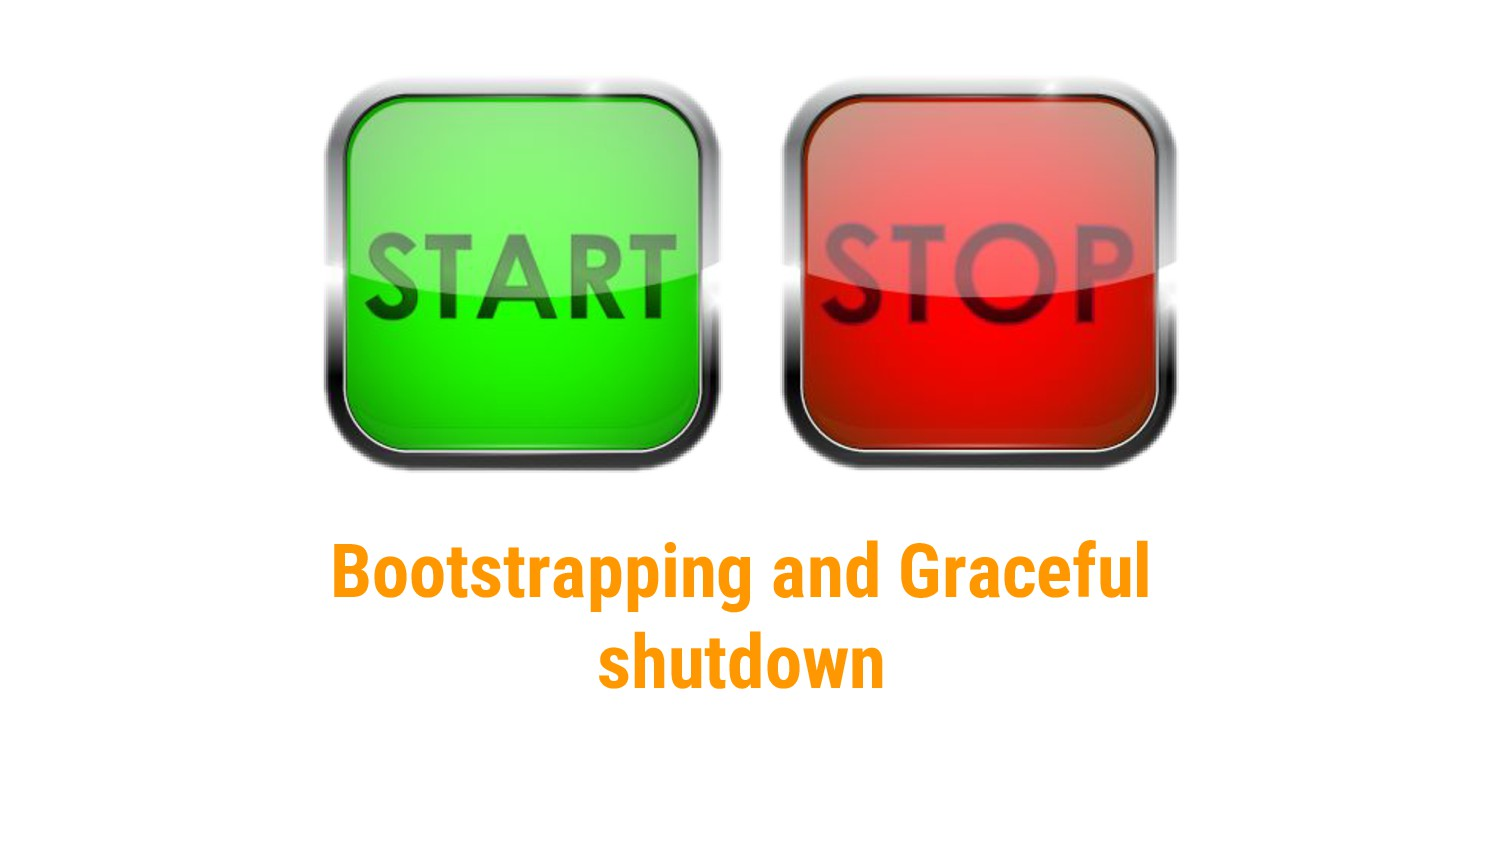 Bootstrapping and Graceful shutdown